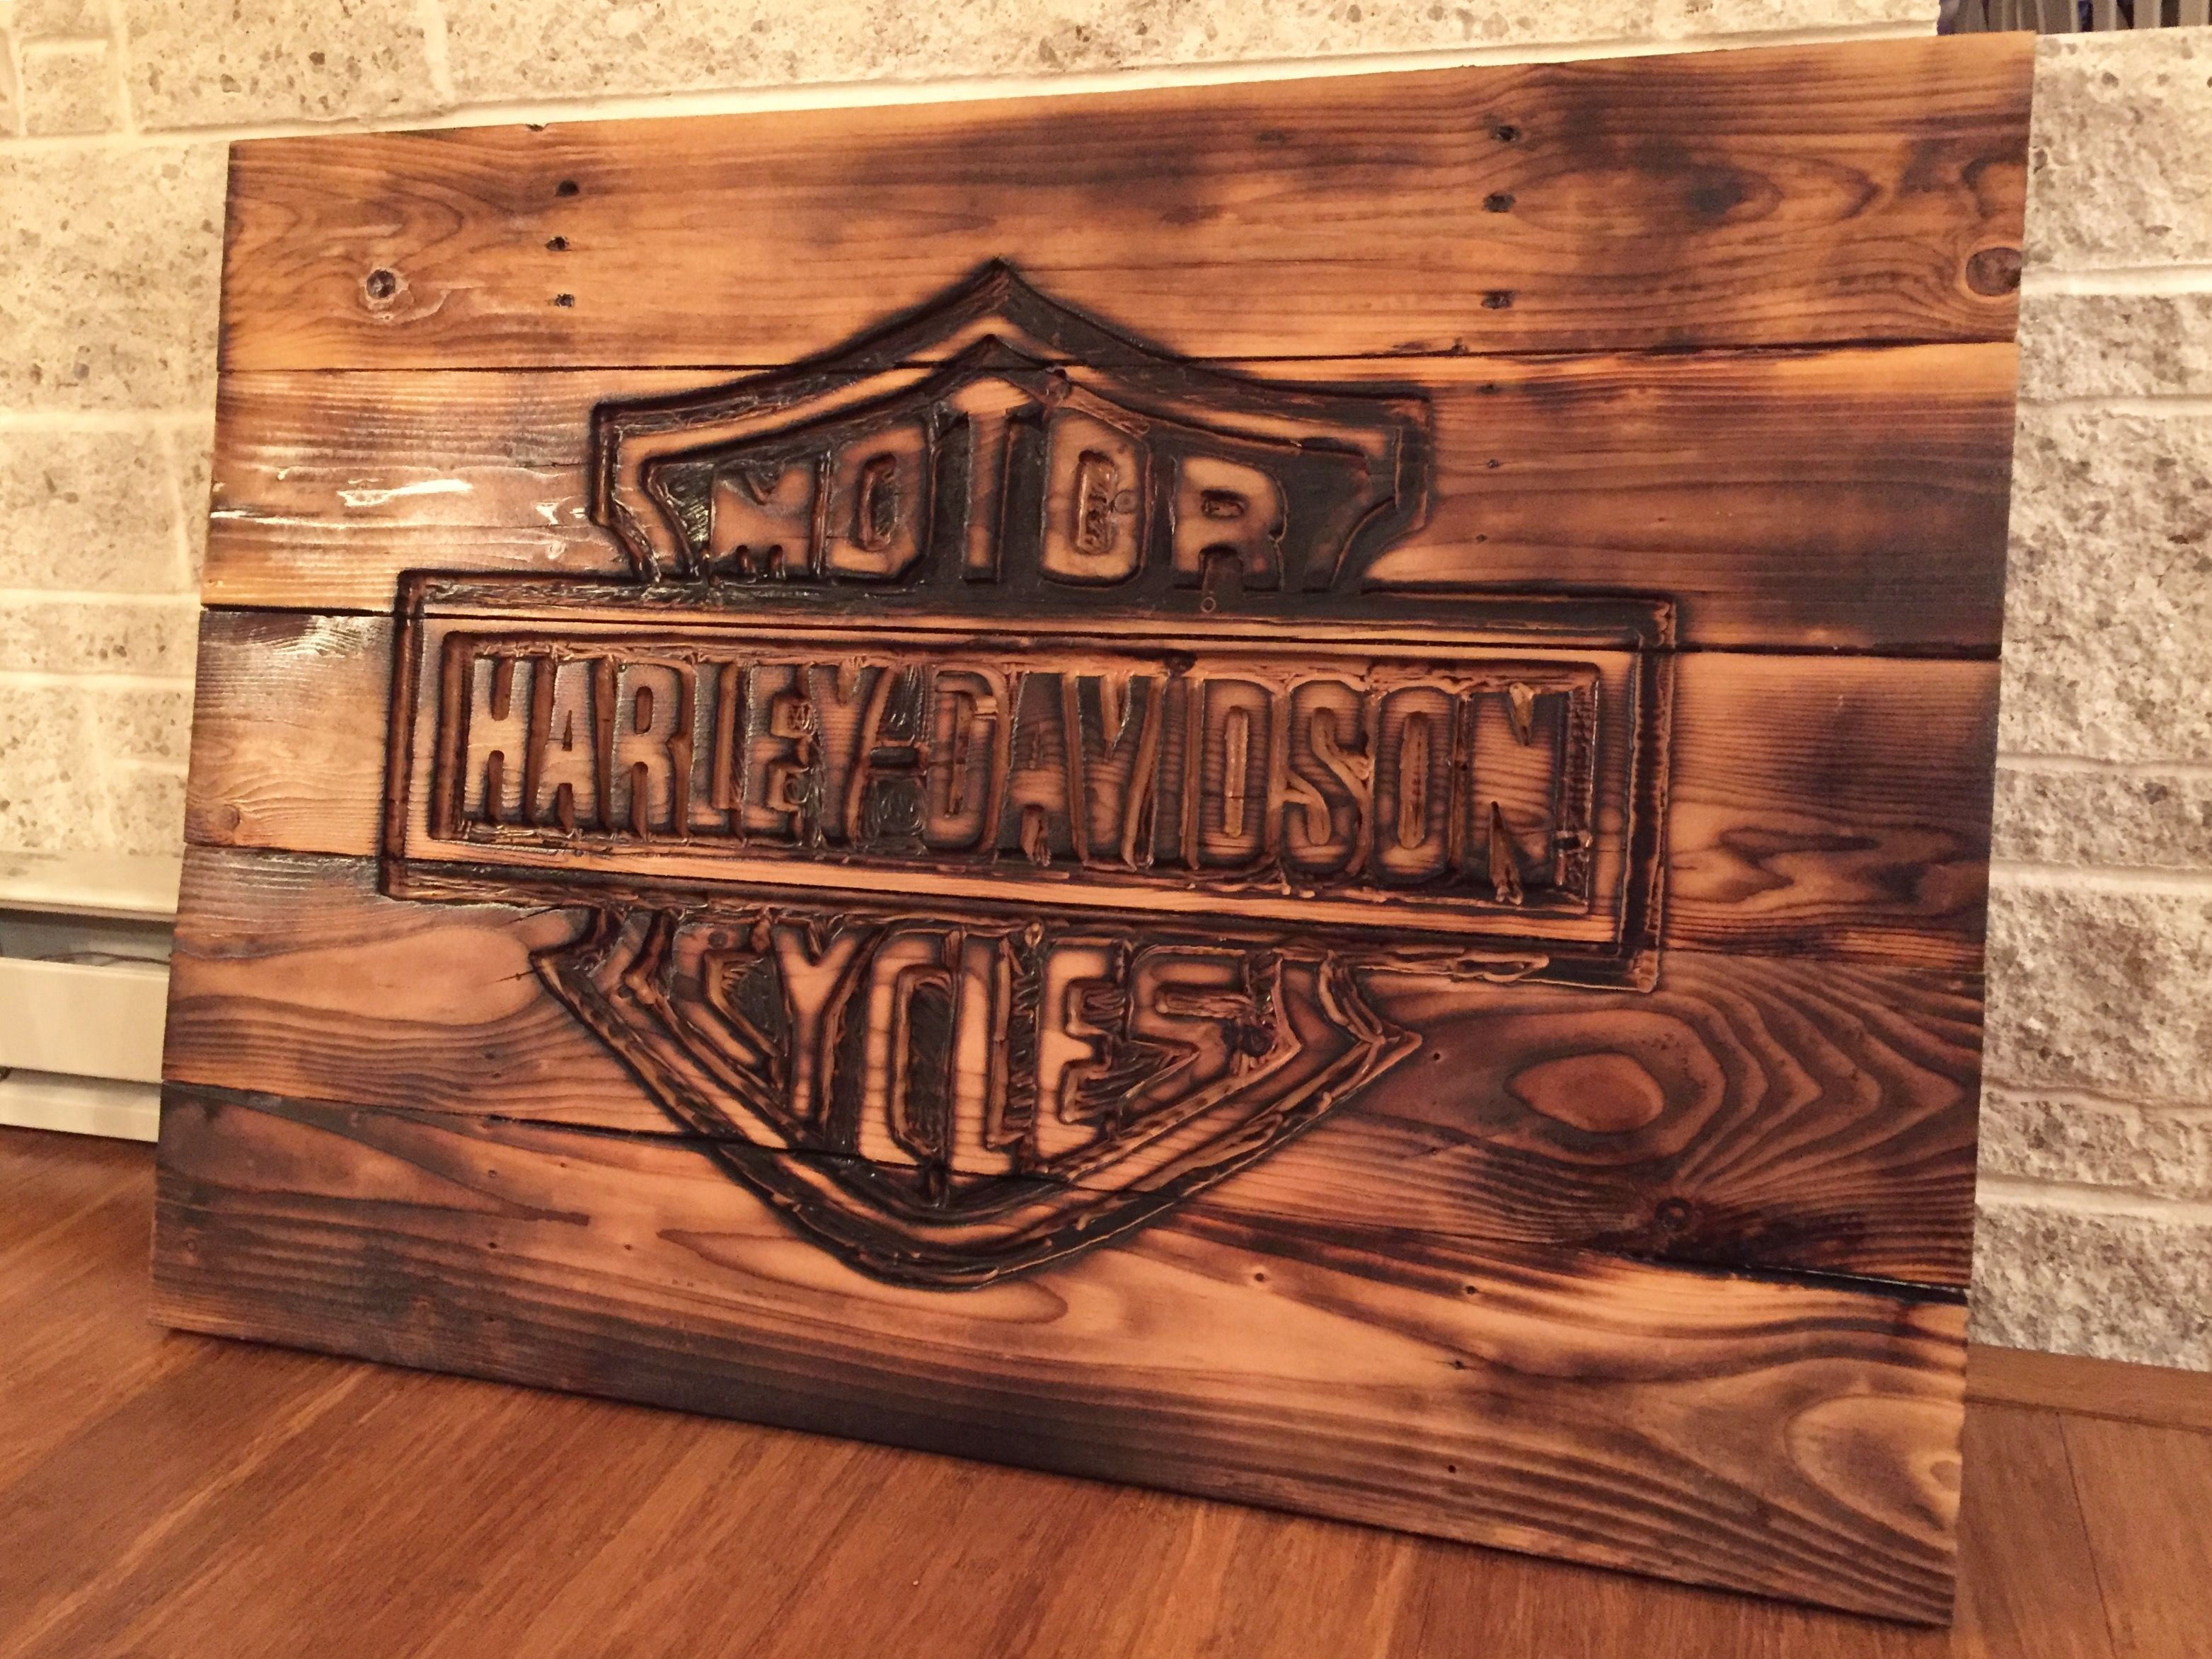 Harley Davidson Sign Made From Pallets Reclaimed Wood Harley